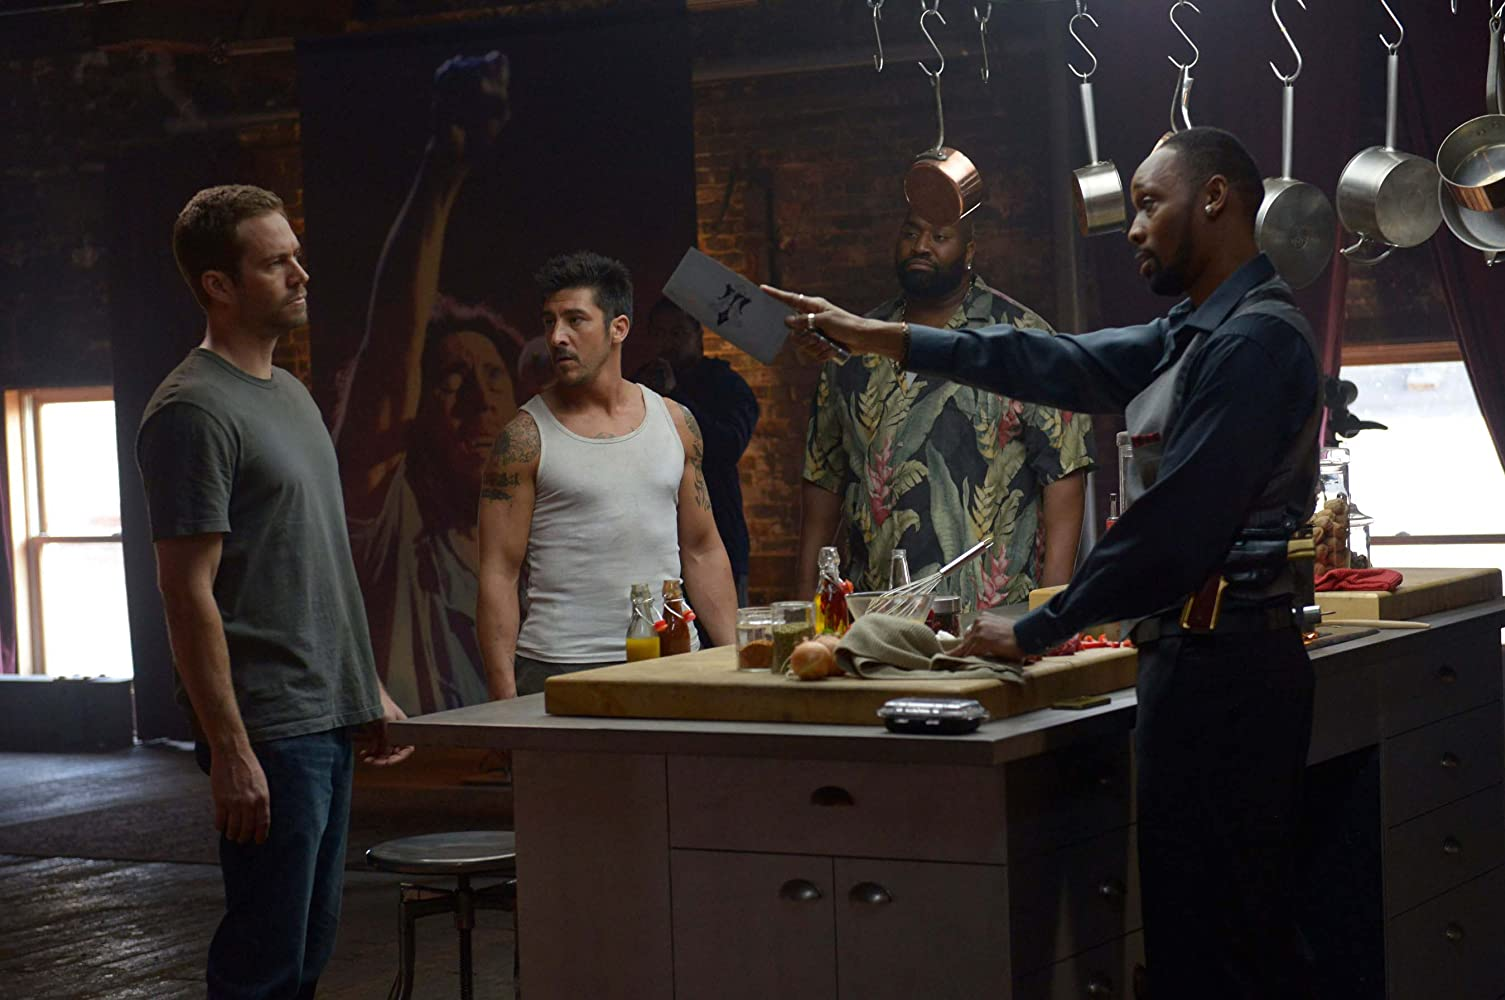 Goûchy Boy, RZA, Paul Walker, and David Belle in Brick Mansions (2014)